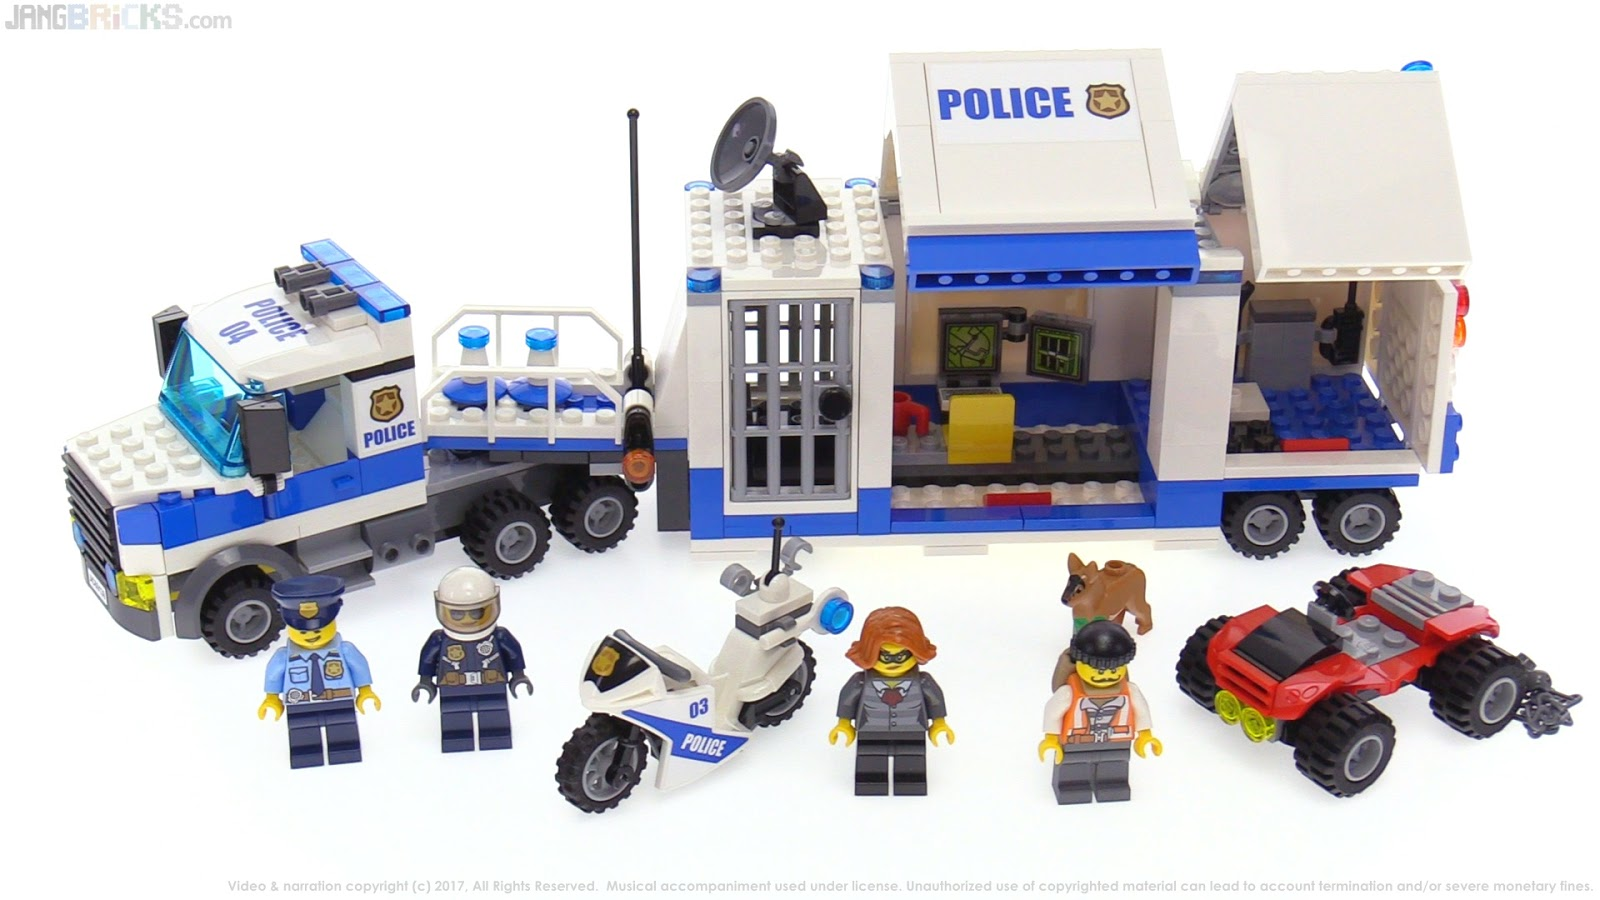 lego city police mobile command center review. Black Bedroom Furniture Sets. Home Design Ideas